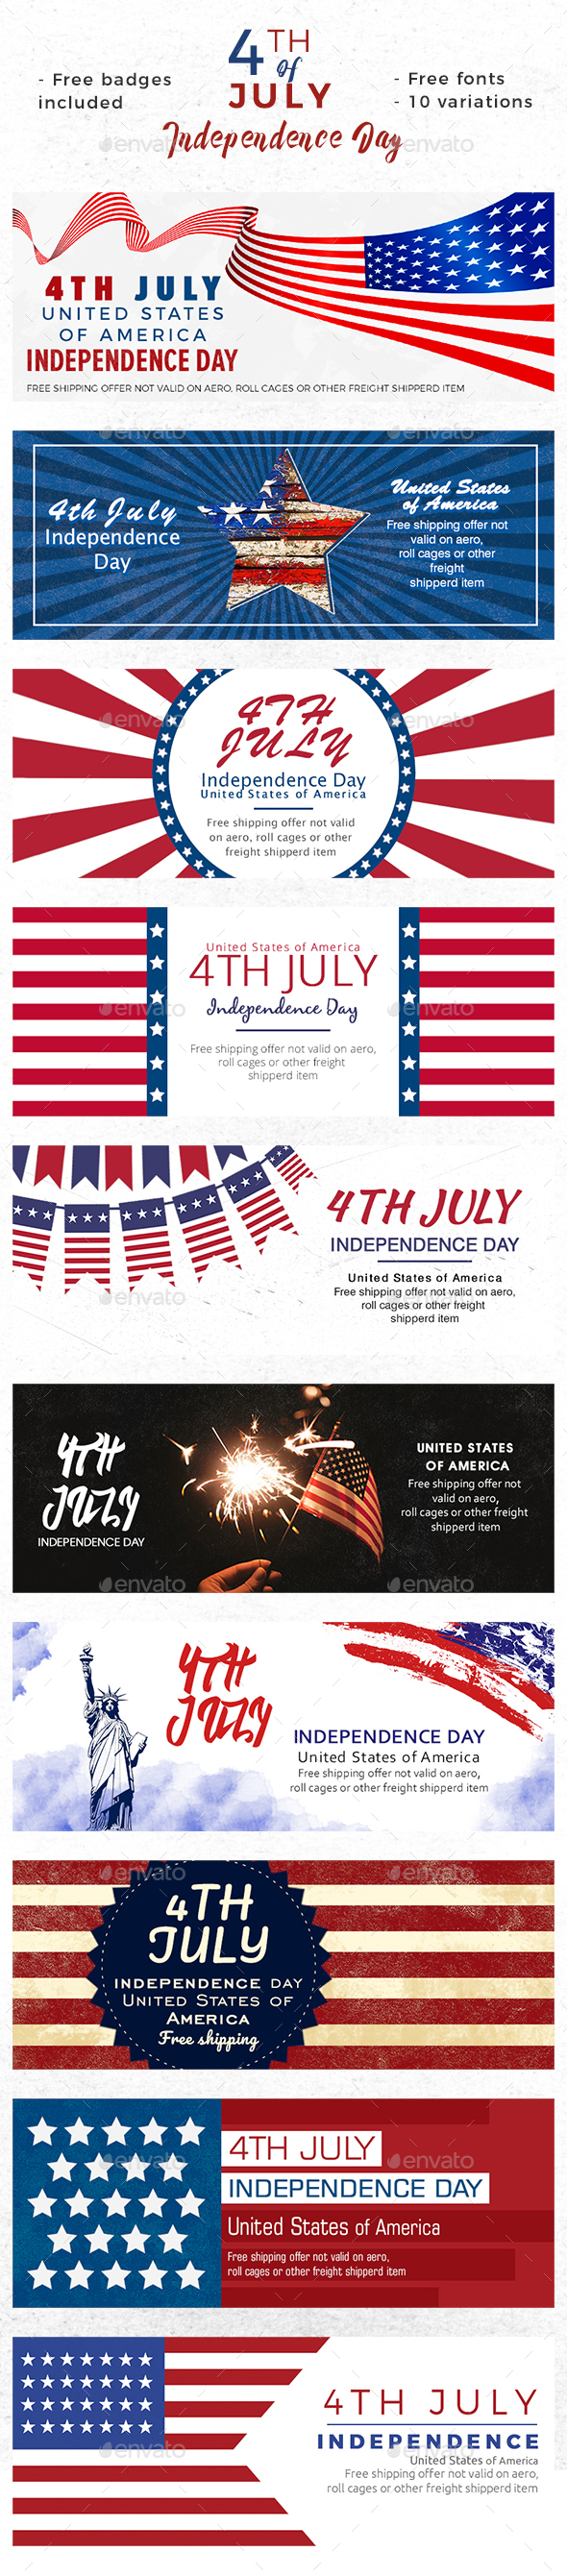 July 4th - Independence Day Banners - Banners & Ads Web Elements